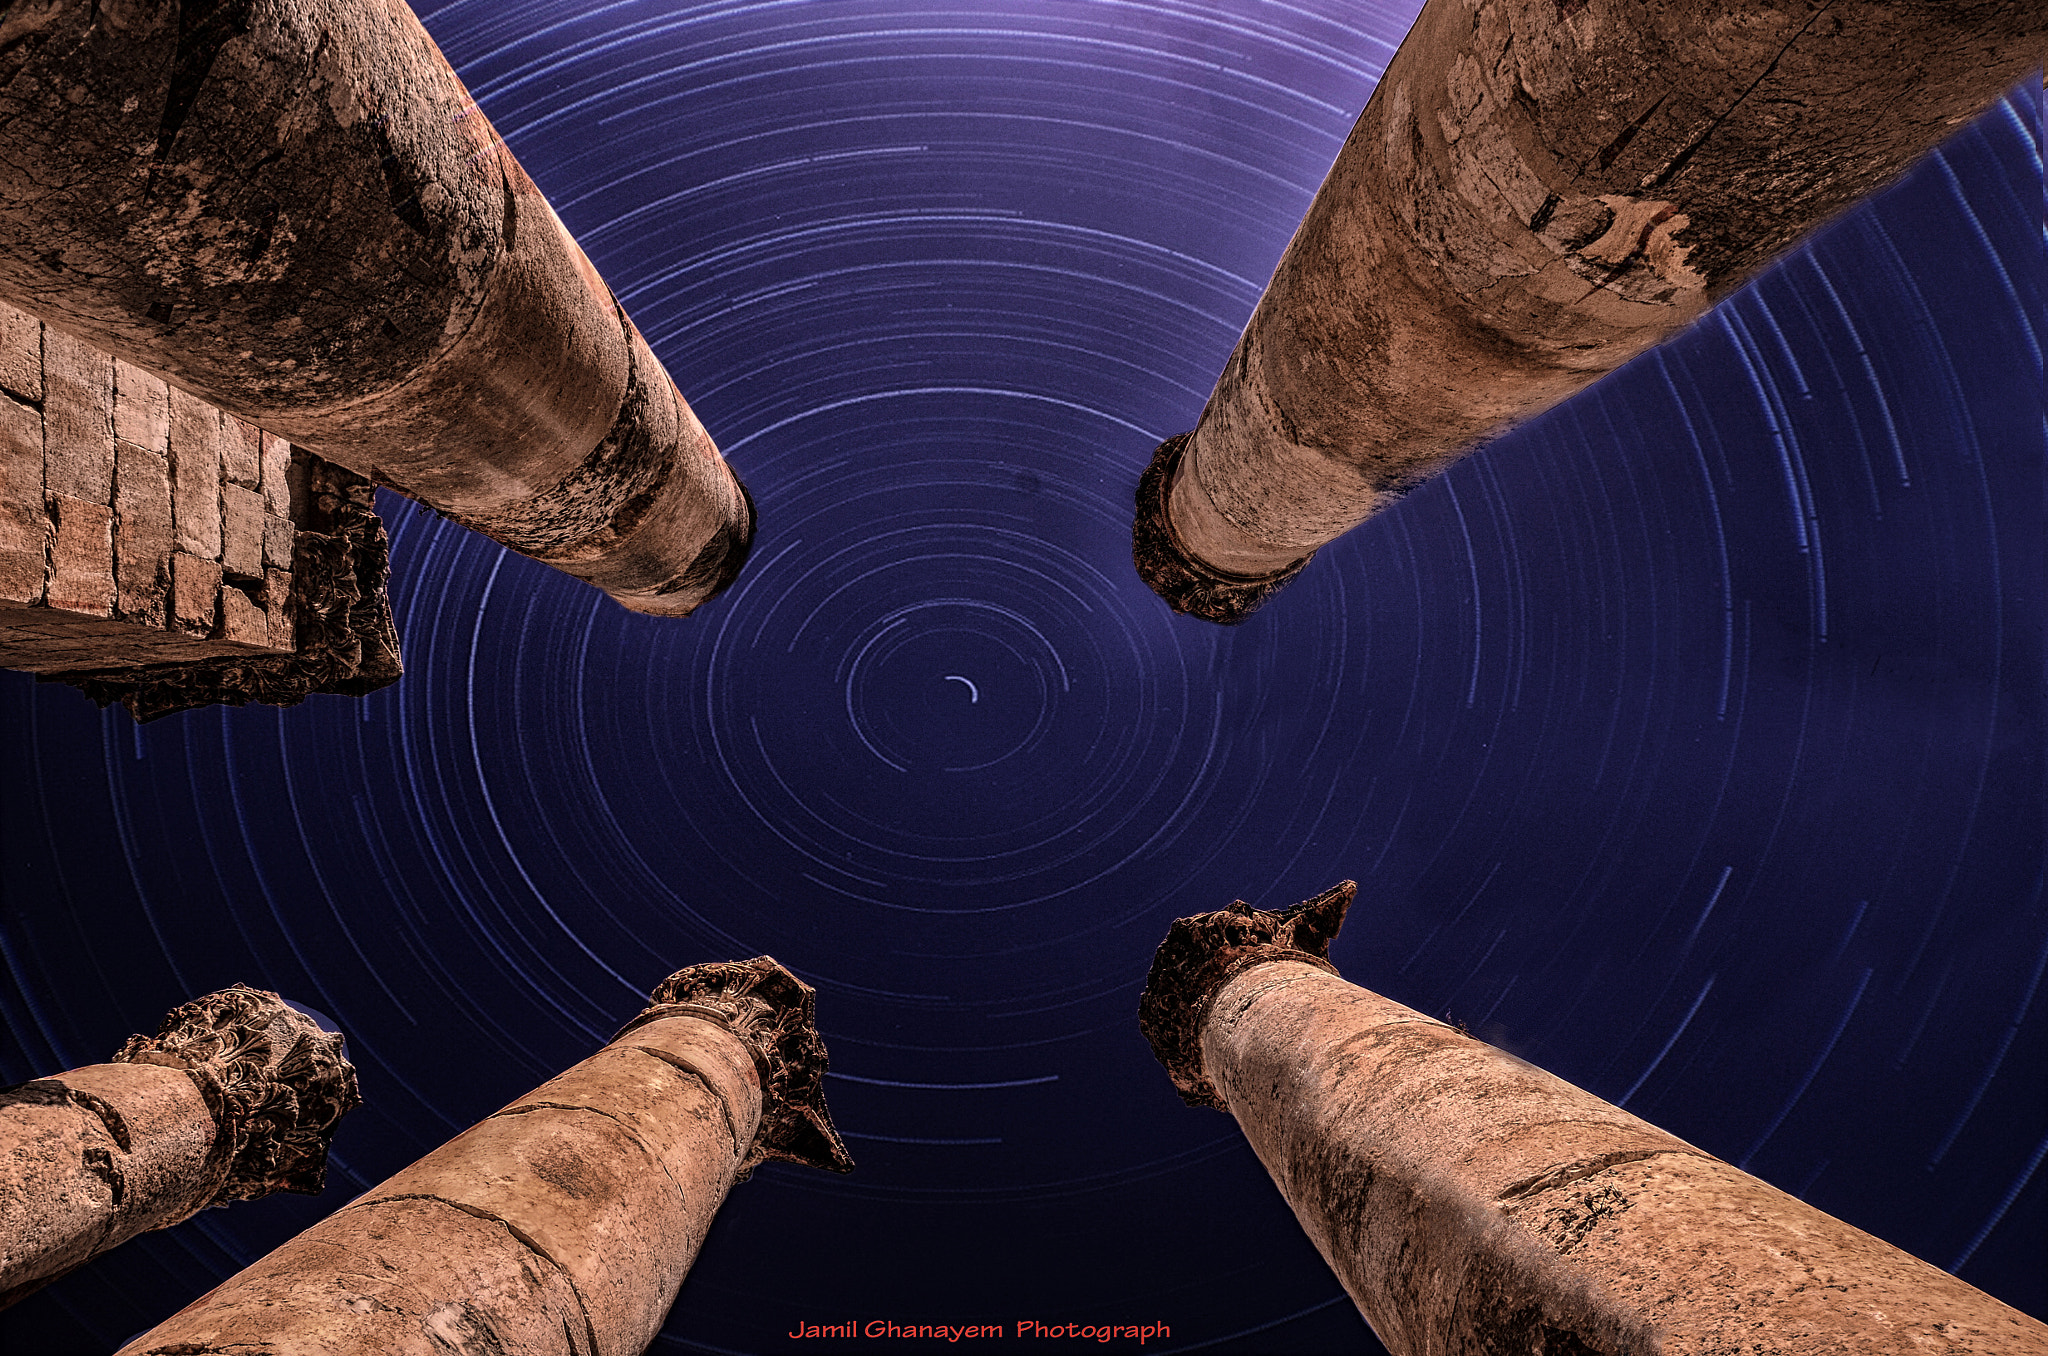 Photograph Gerasa Columns Trails  by jamil ghanayem on 500px